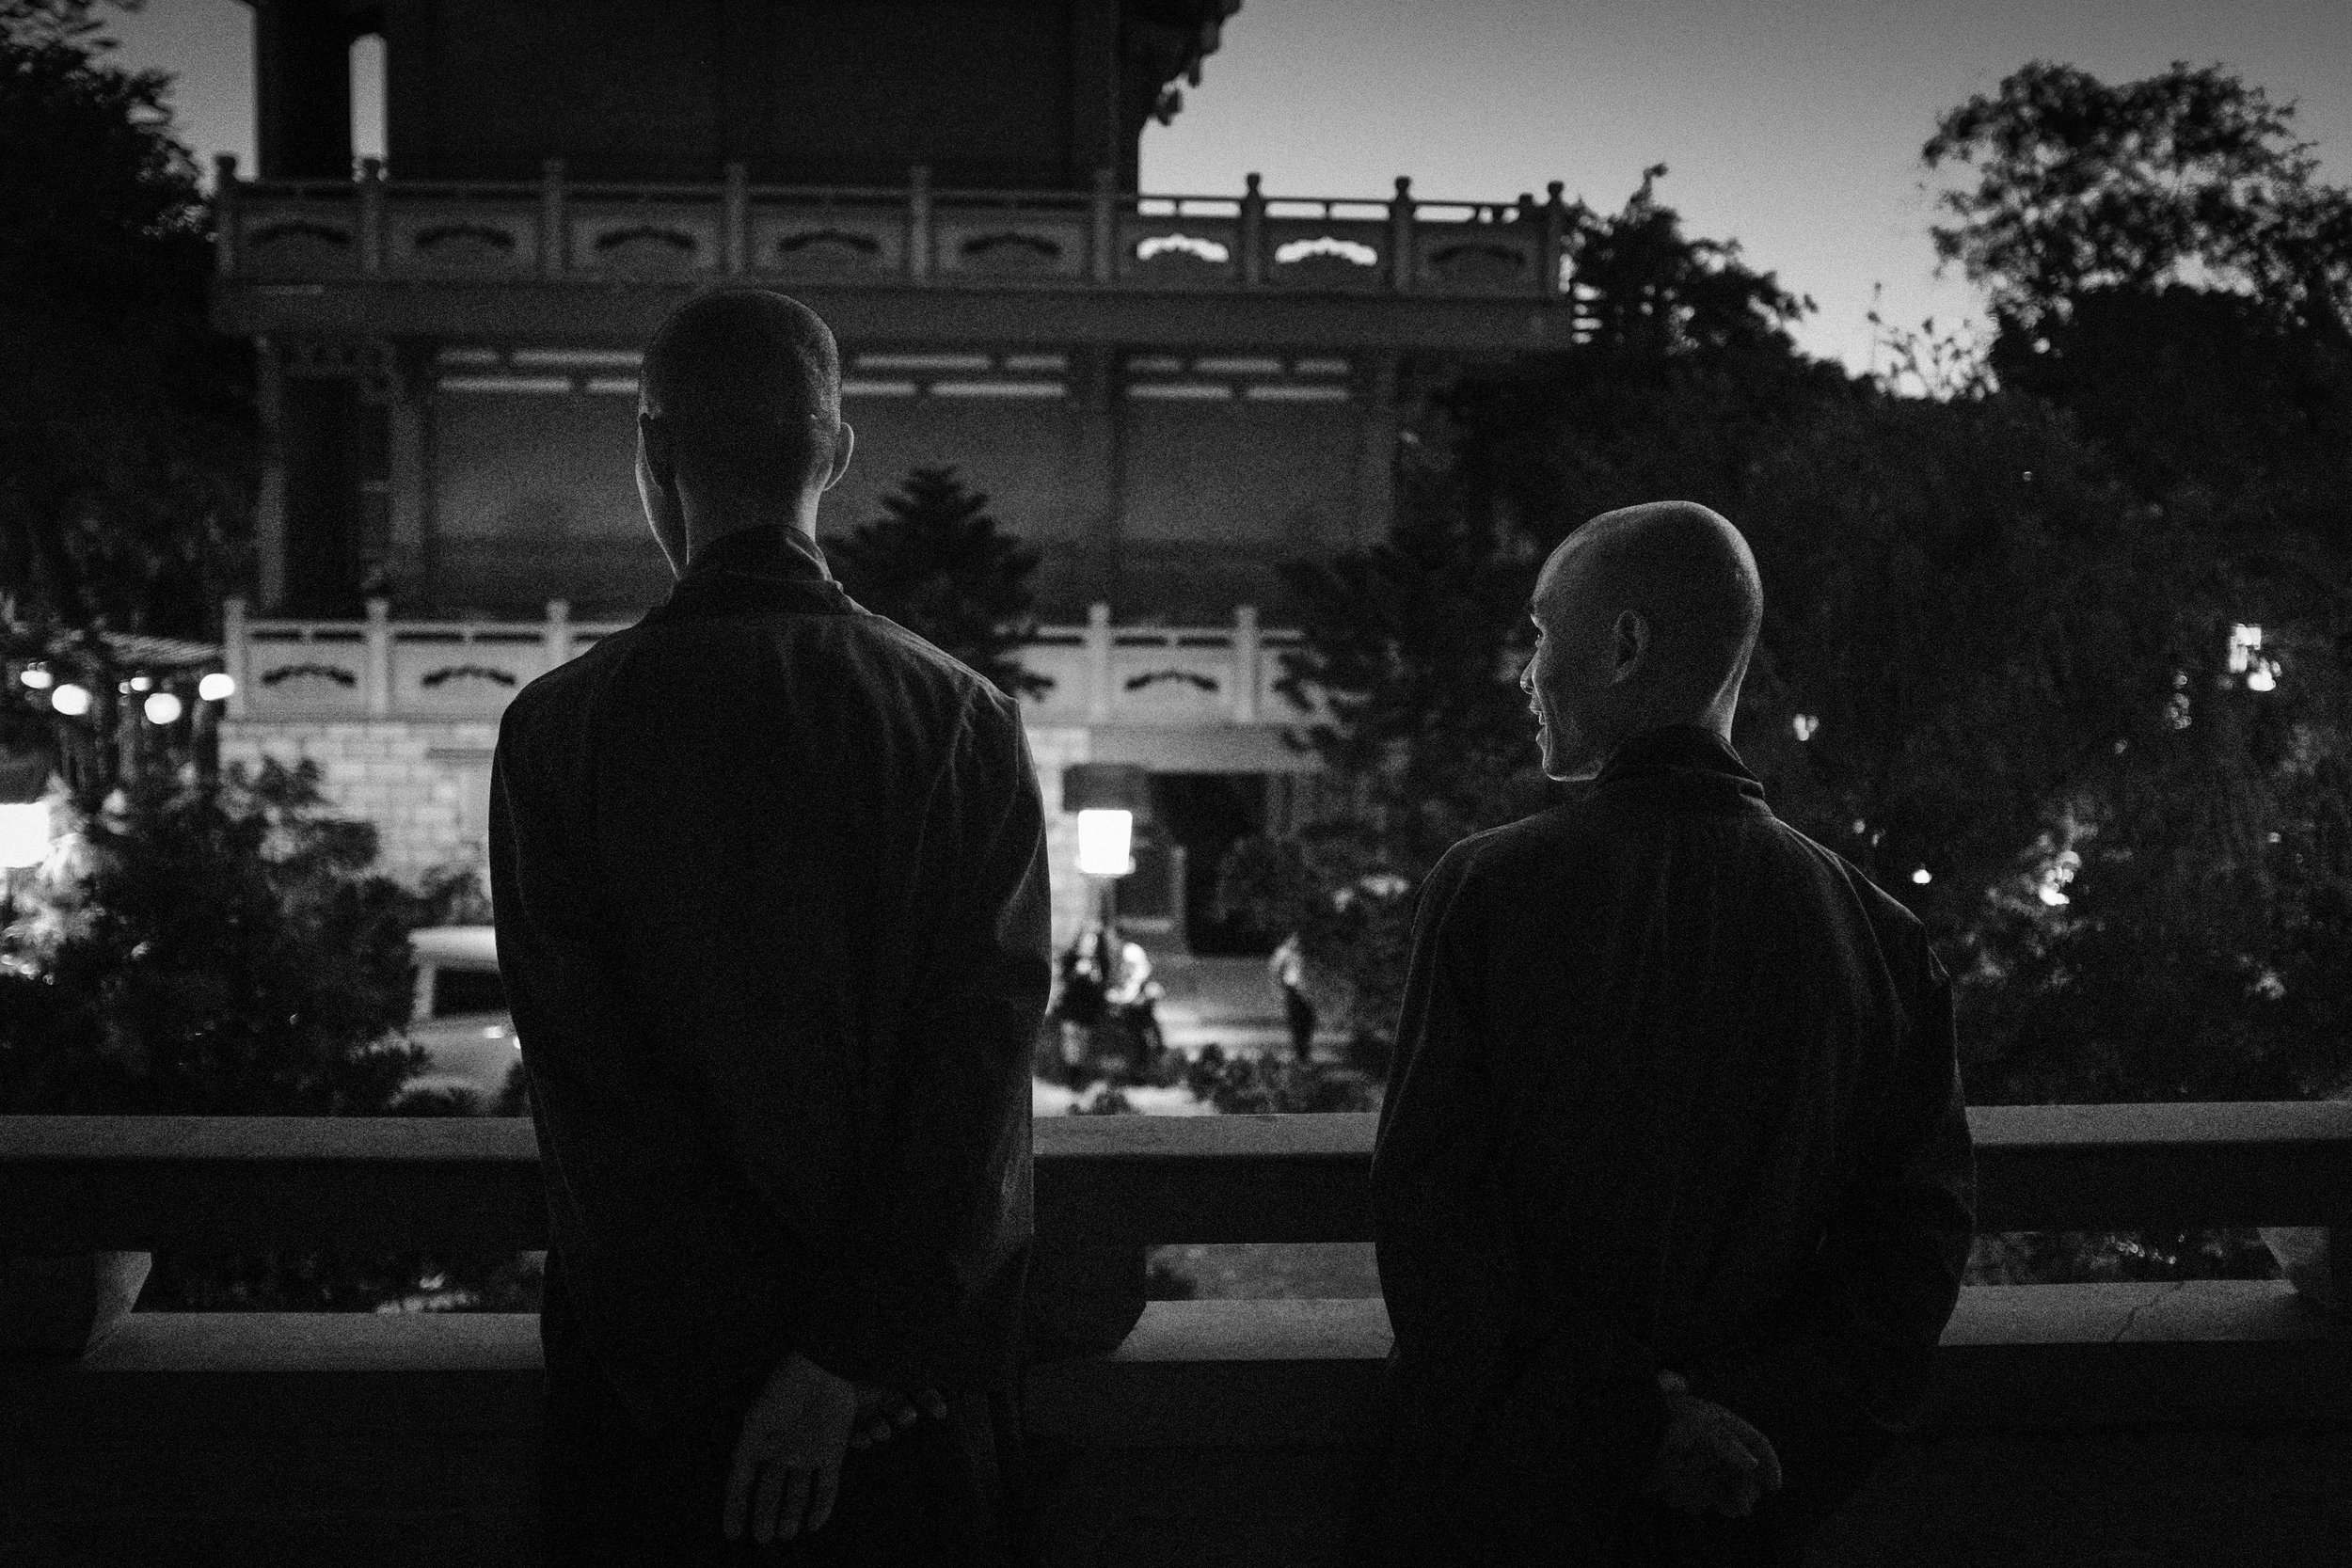 Two monks at night